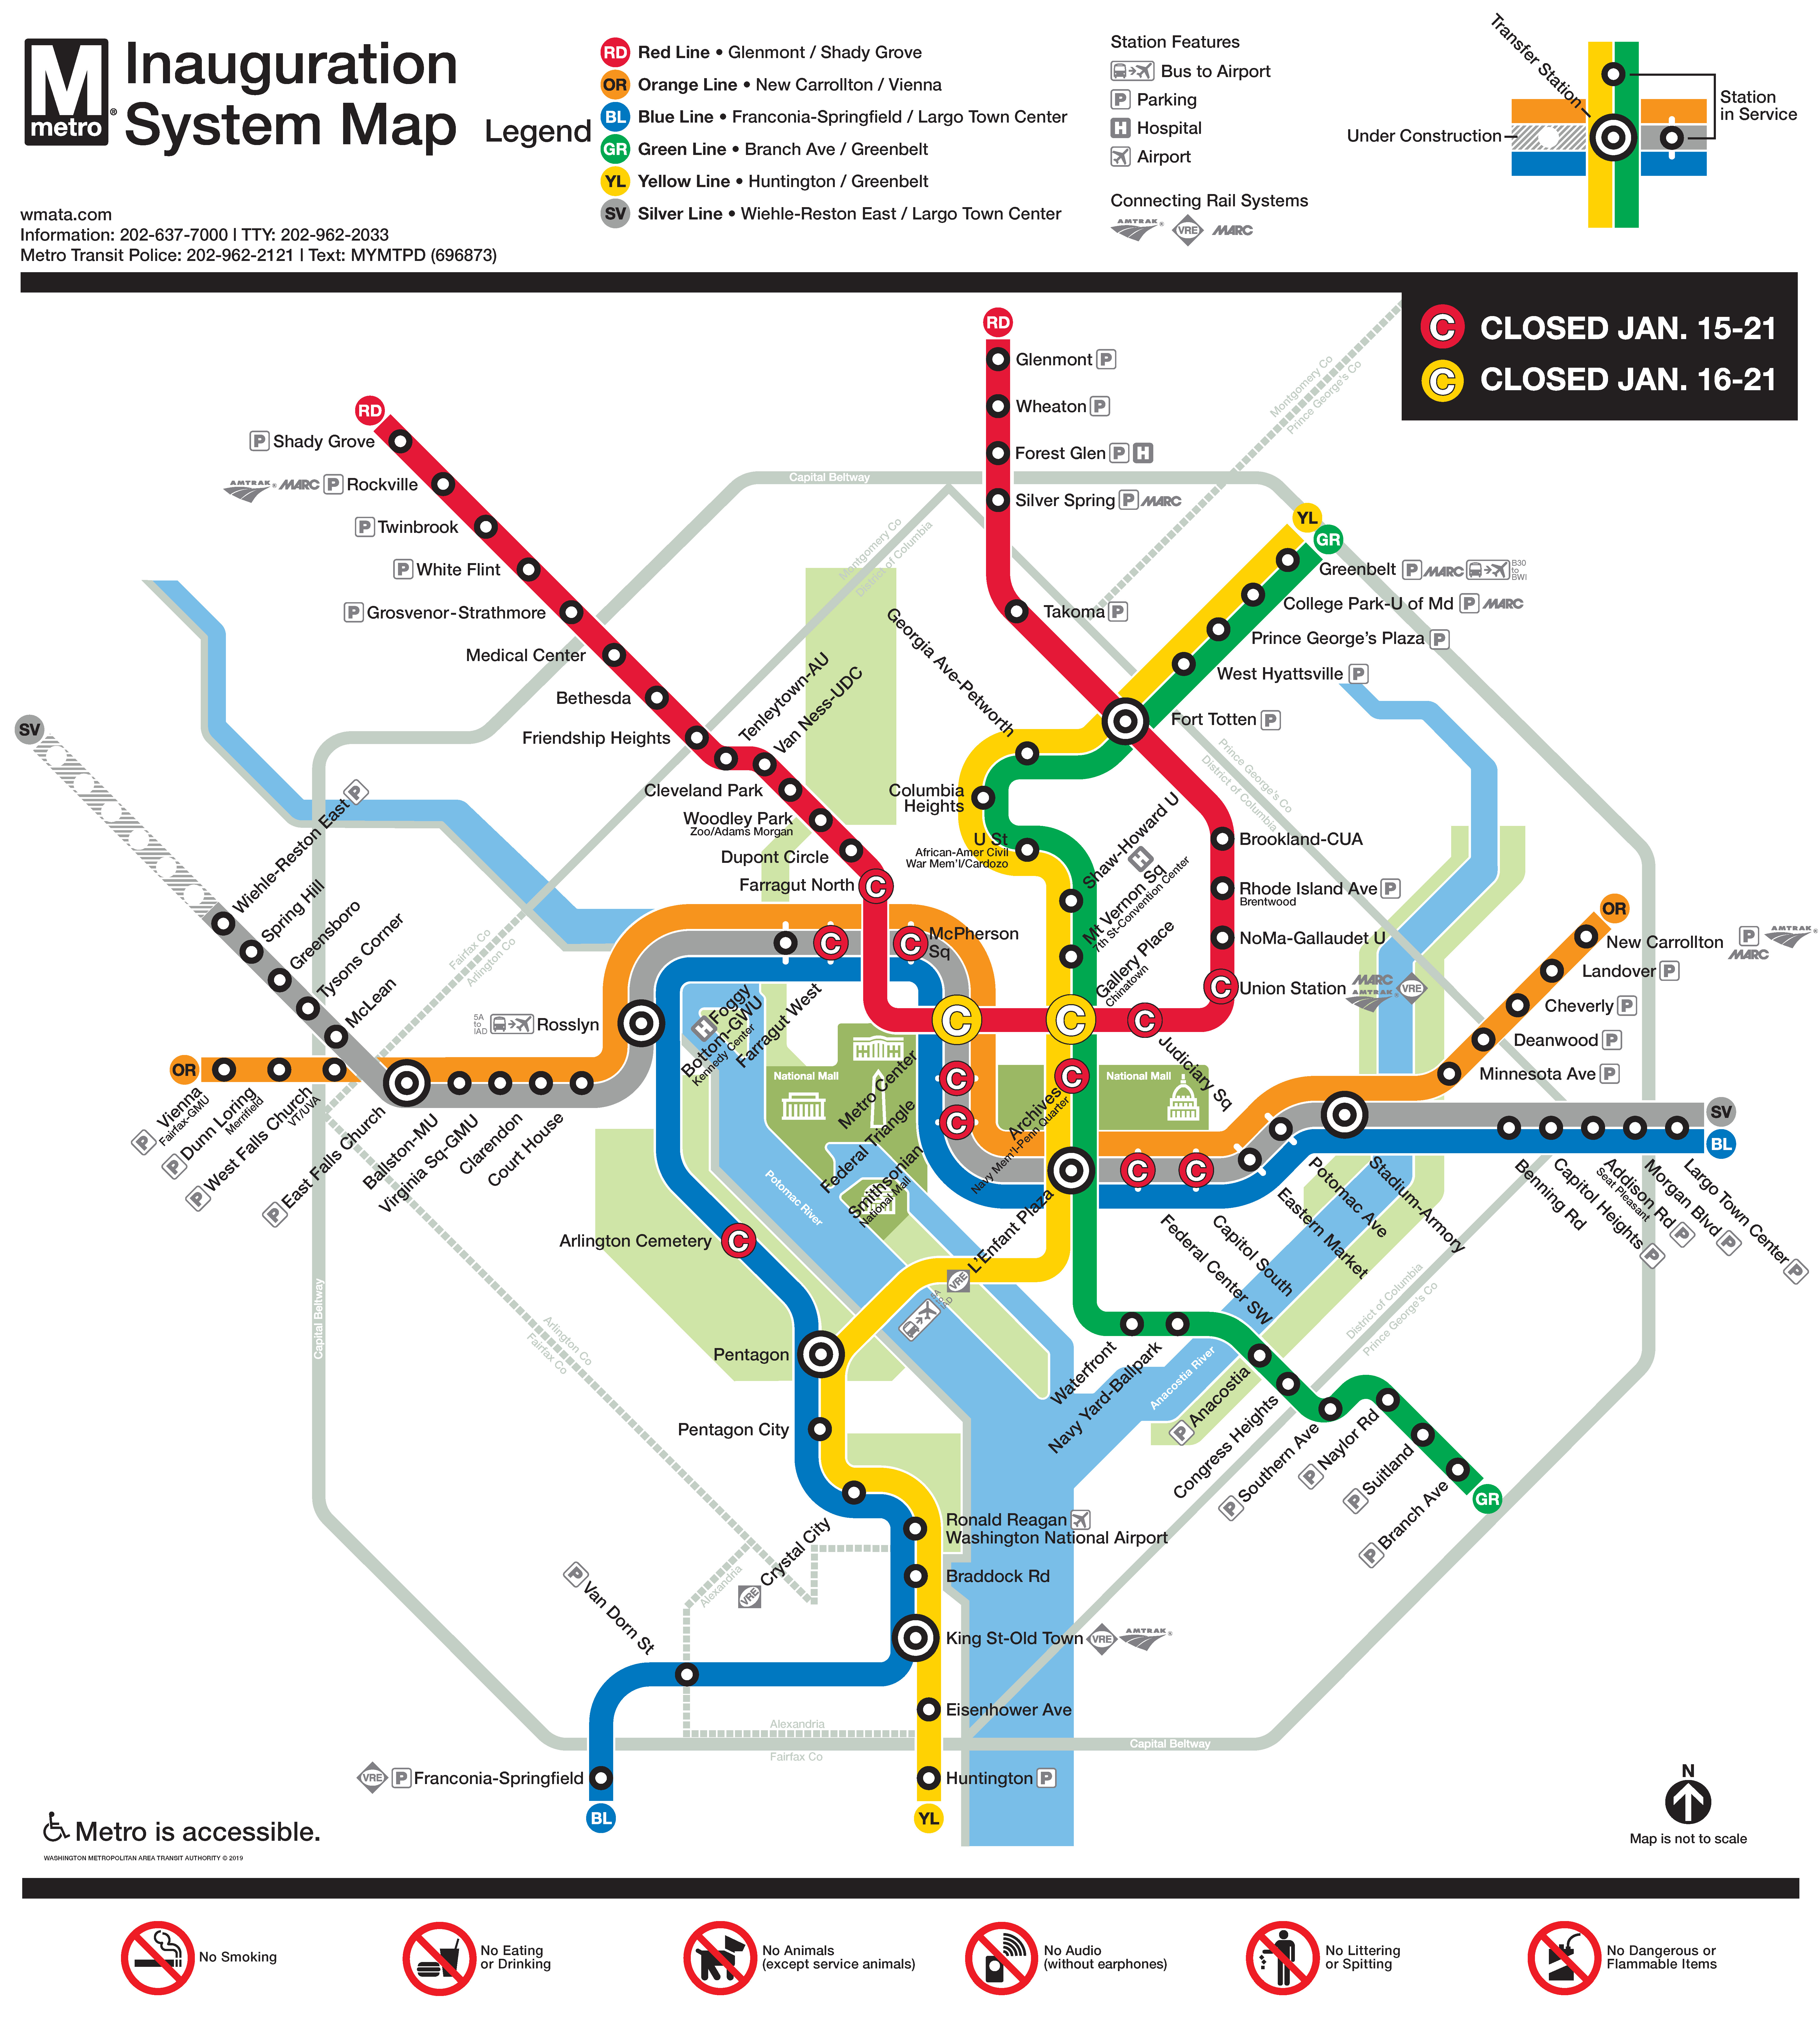 Inauguration 2021 Rail service Map